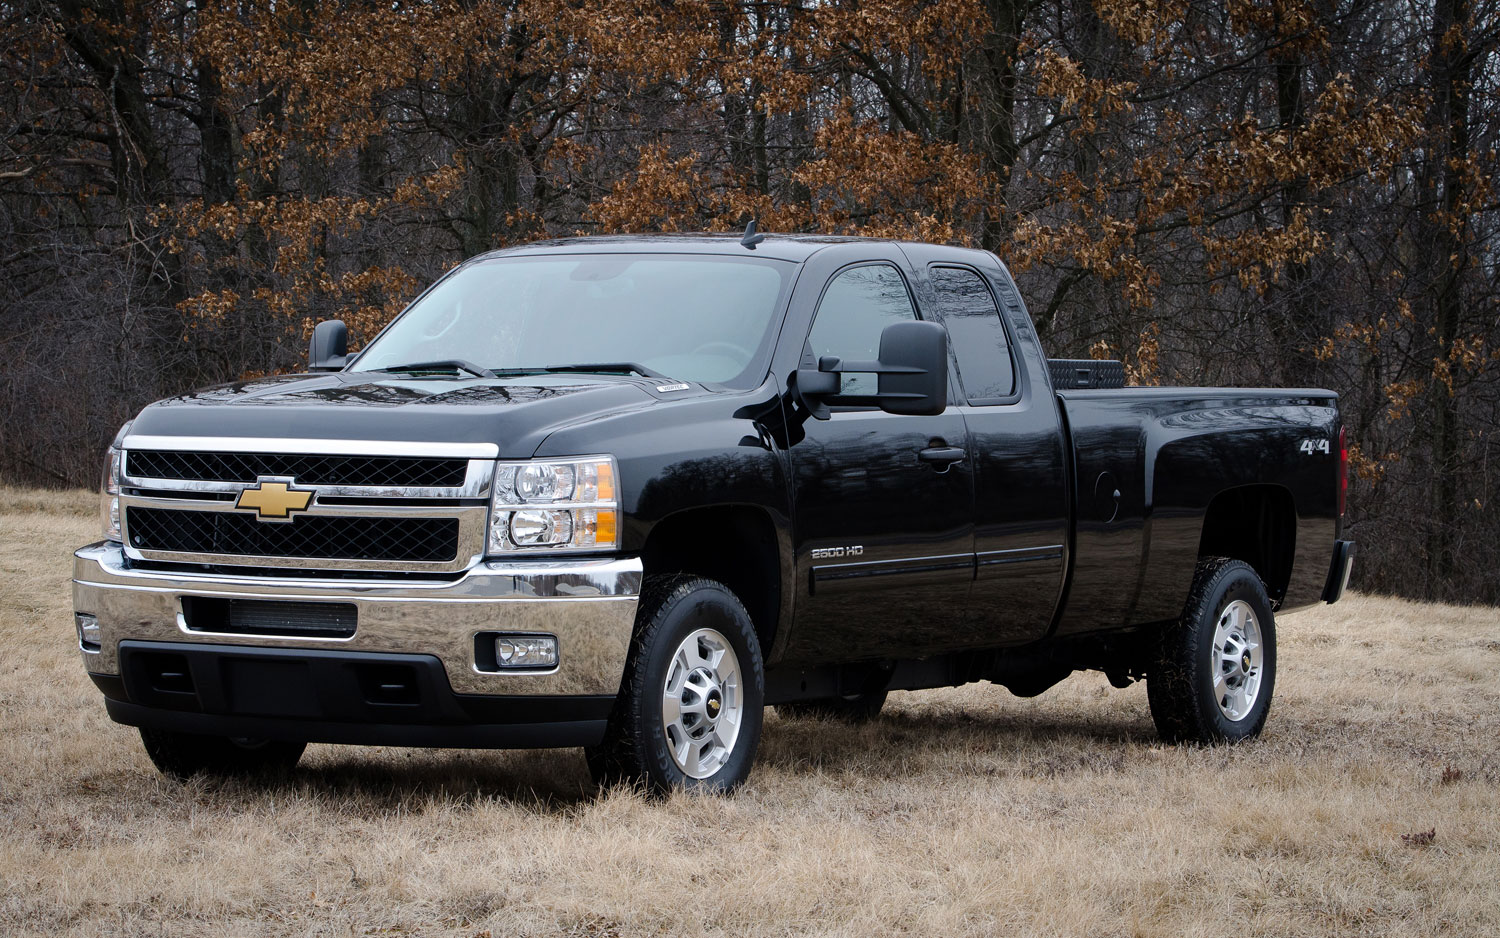 2013 Chevrolet Silverado 2500 HD Bi Fuel Front Three Quarter1